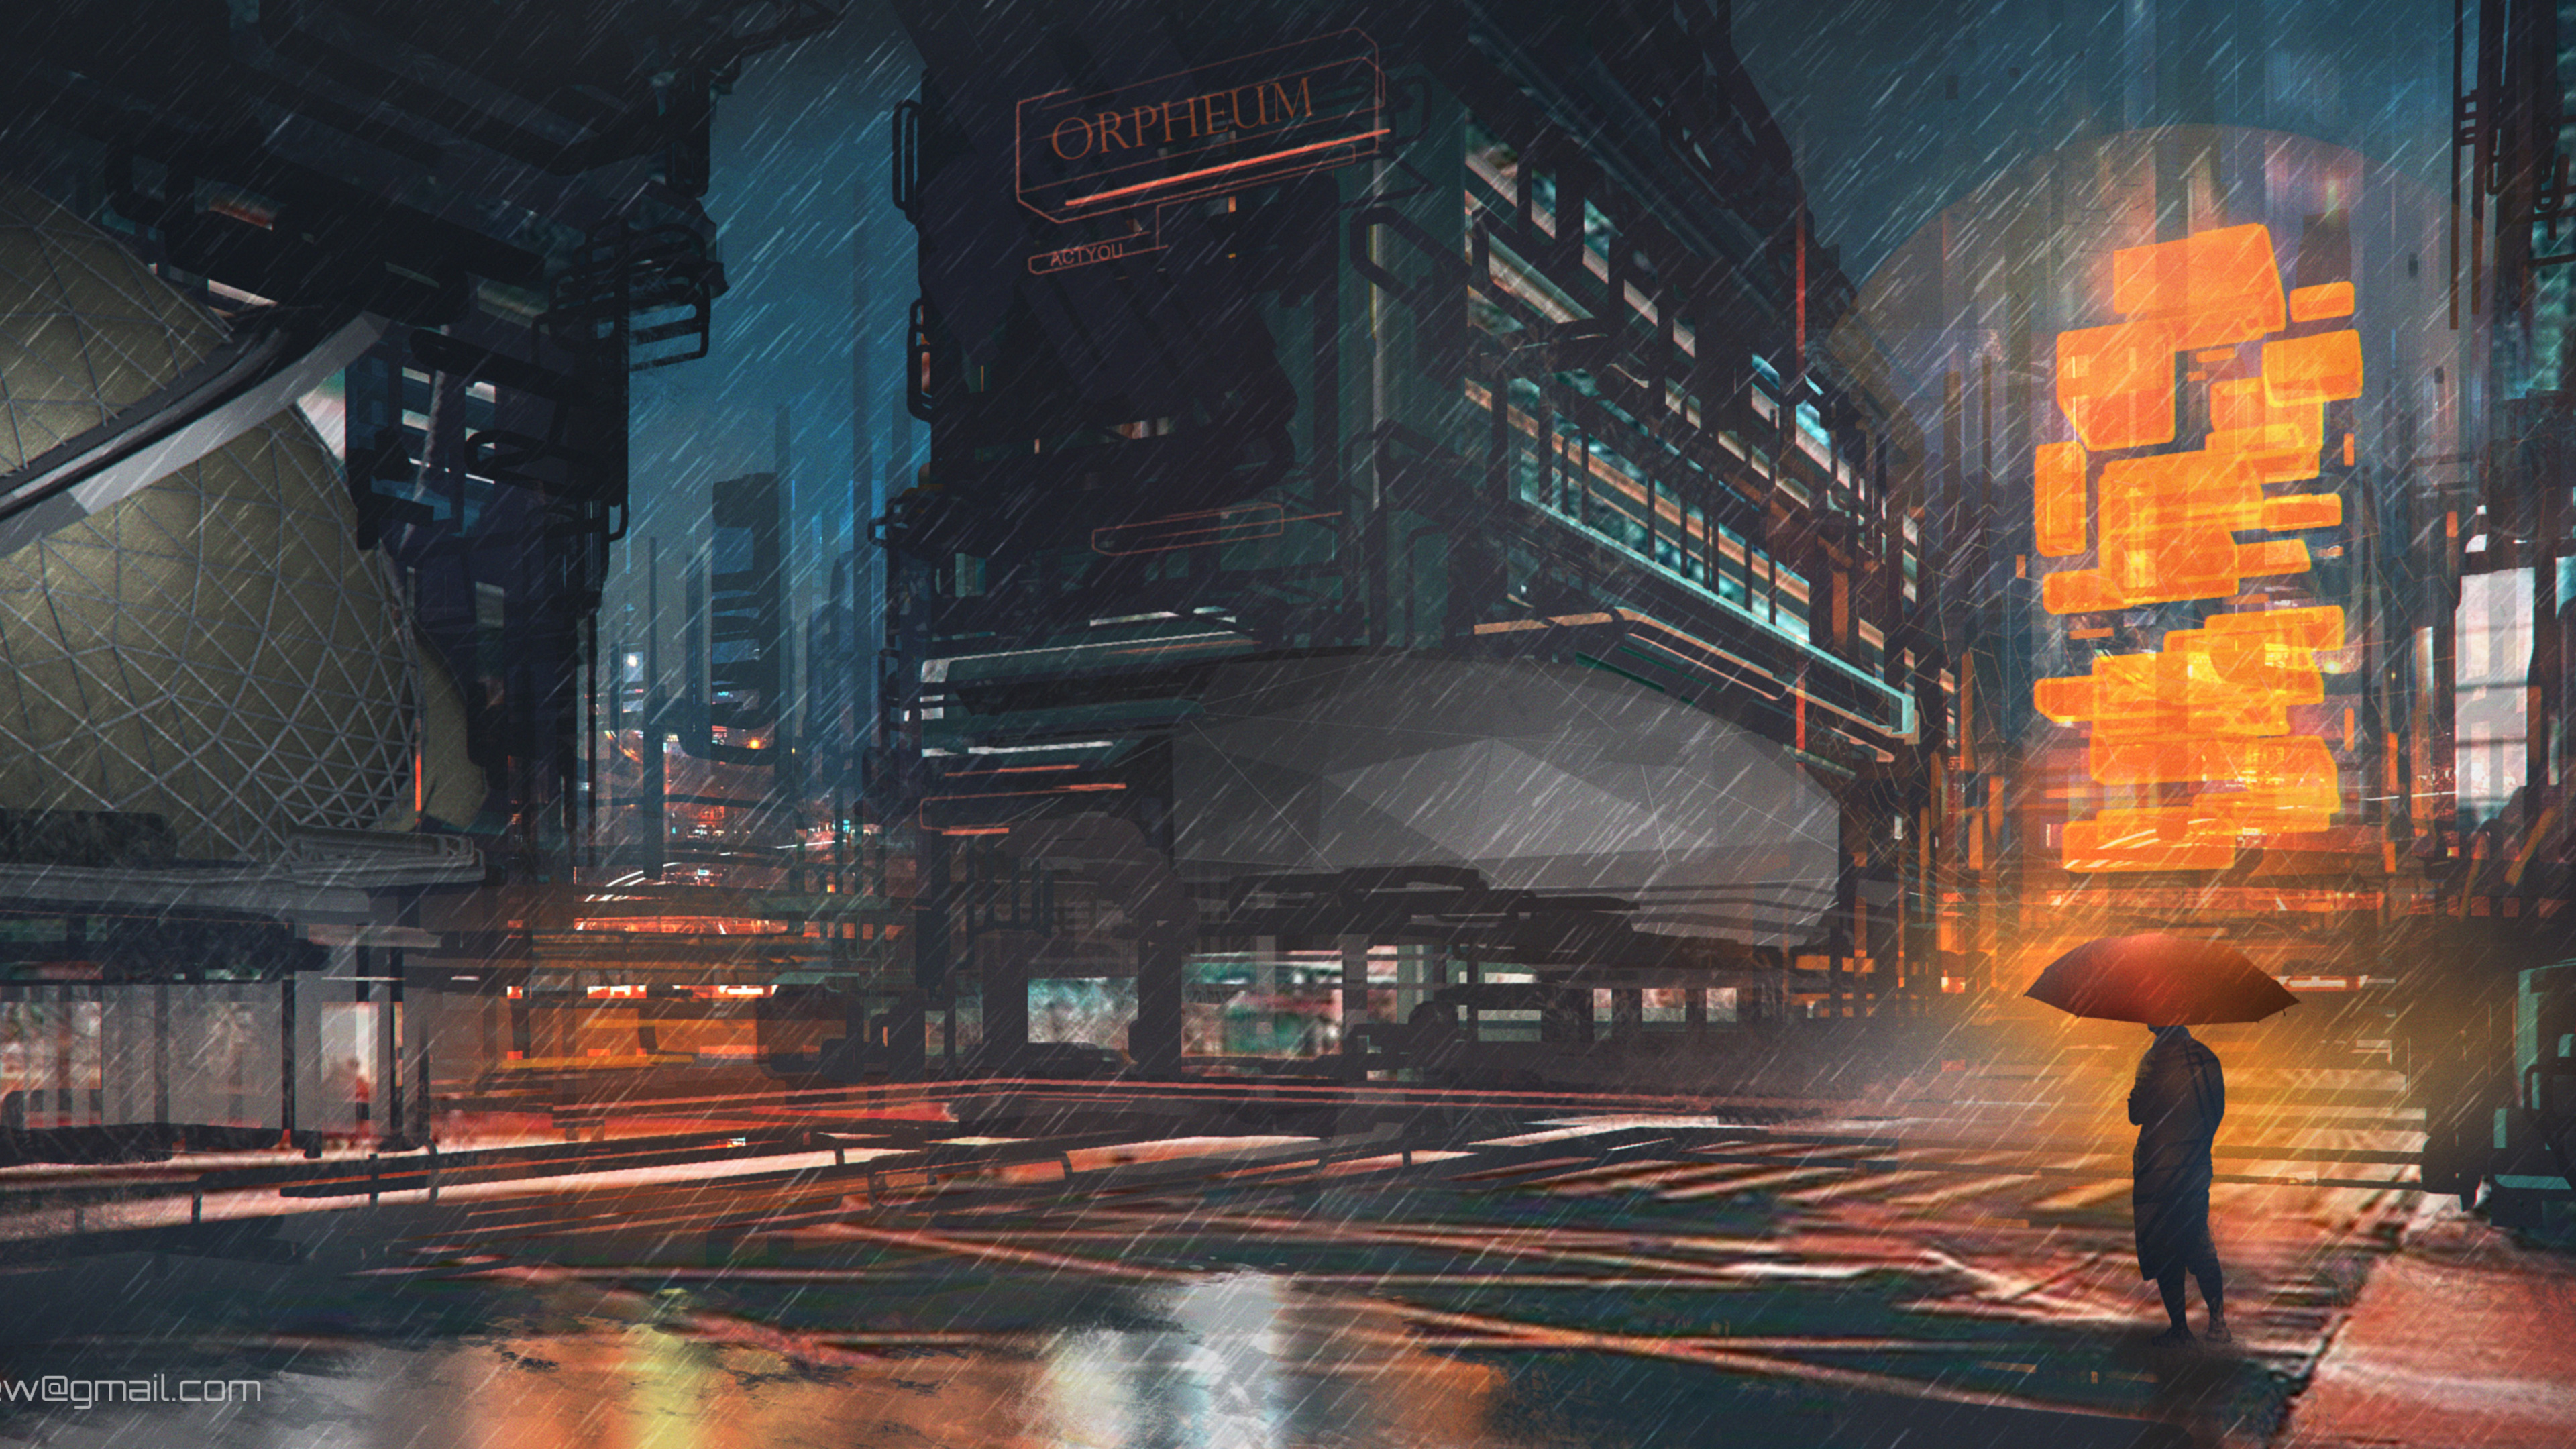 Wallpaper 4k Rainy Night Man With Umbrella Scifi Drawings Digital Art 4k 4k Wallpapers Artist Wallpapers Artwork Wallpapers Cyberpunk Wallpapers Deviantart Wallpapers Digital Art Wallpapers Hd Wallpapers Neon Wallpapers Rain Wallpapers Scifi